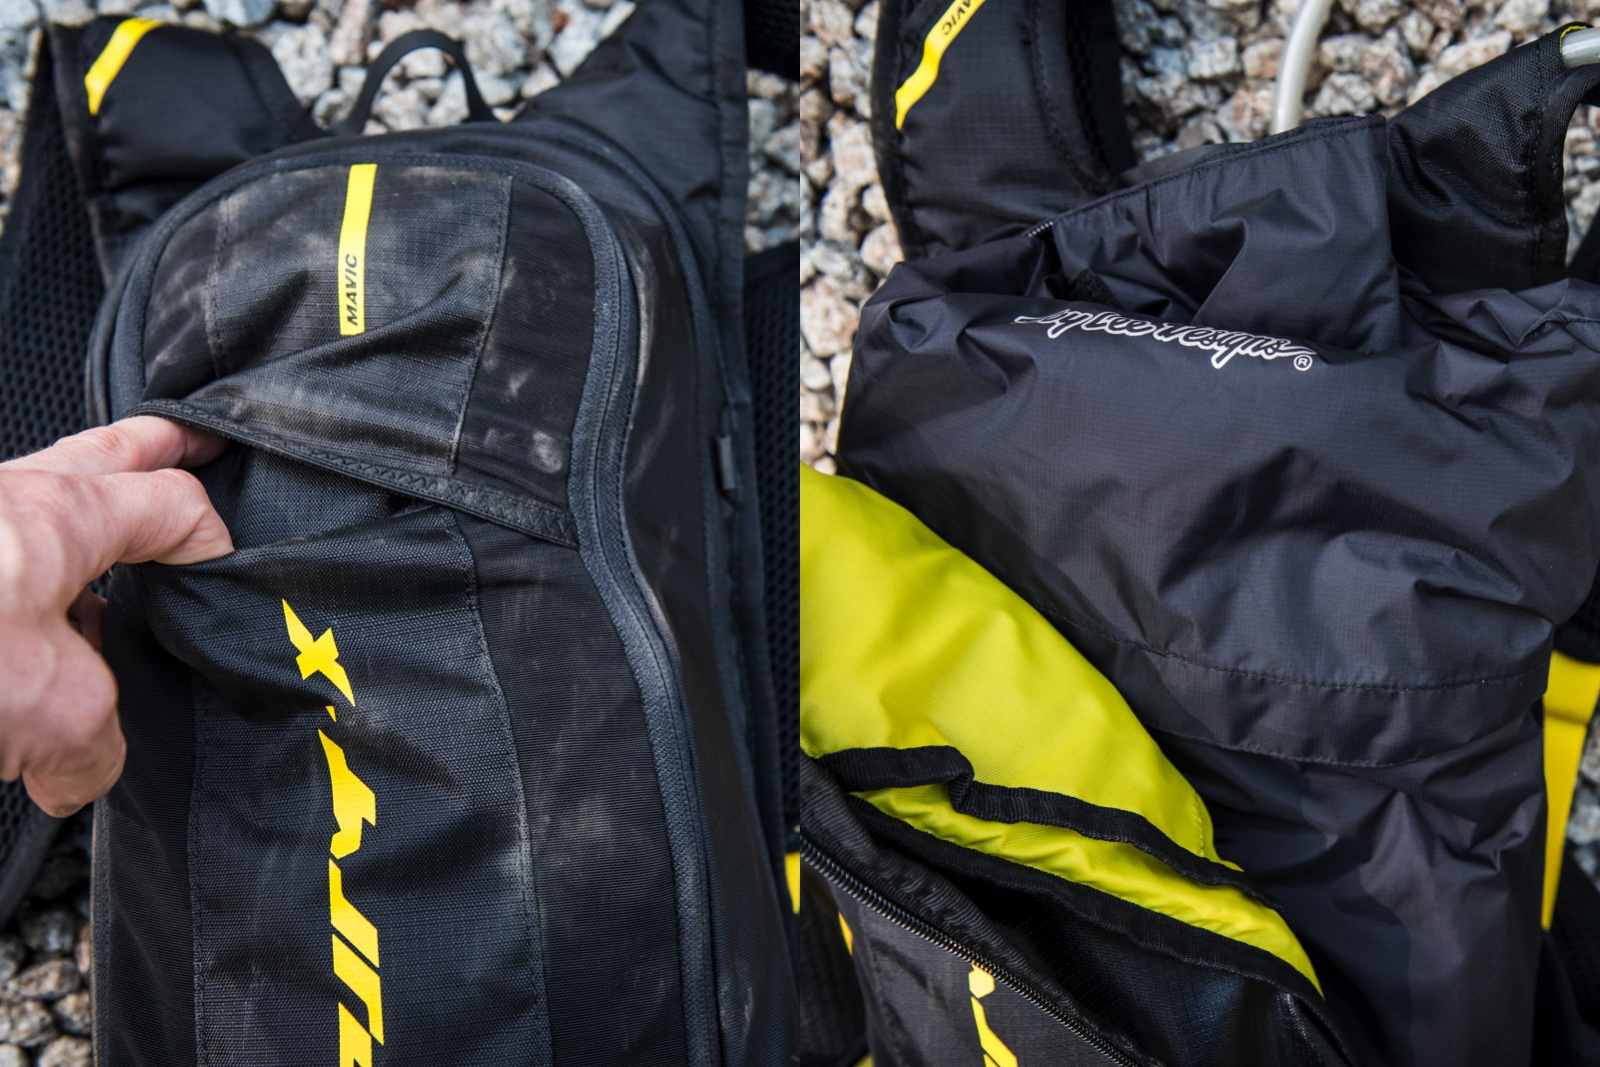 On the left is a stow area where you could jam lightweight kneepads or a shell.  On the right you can see a full internal compartment where you could do the same.